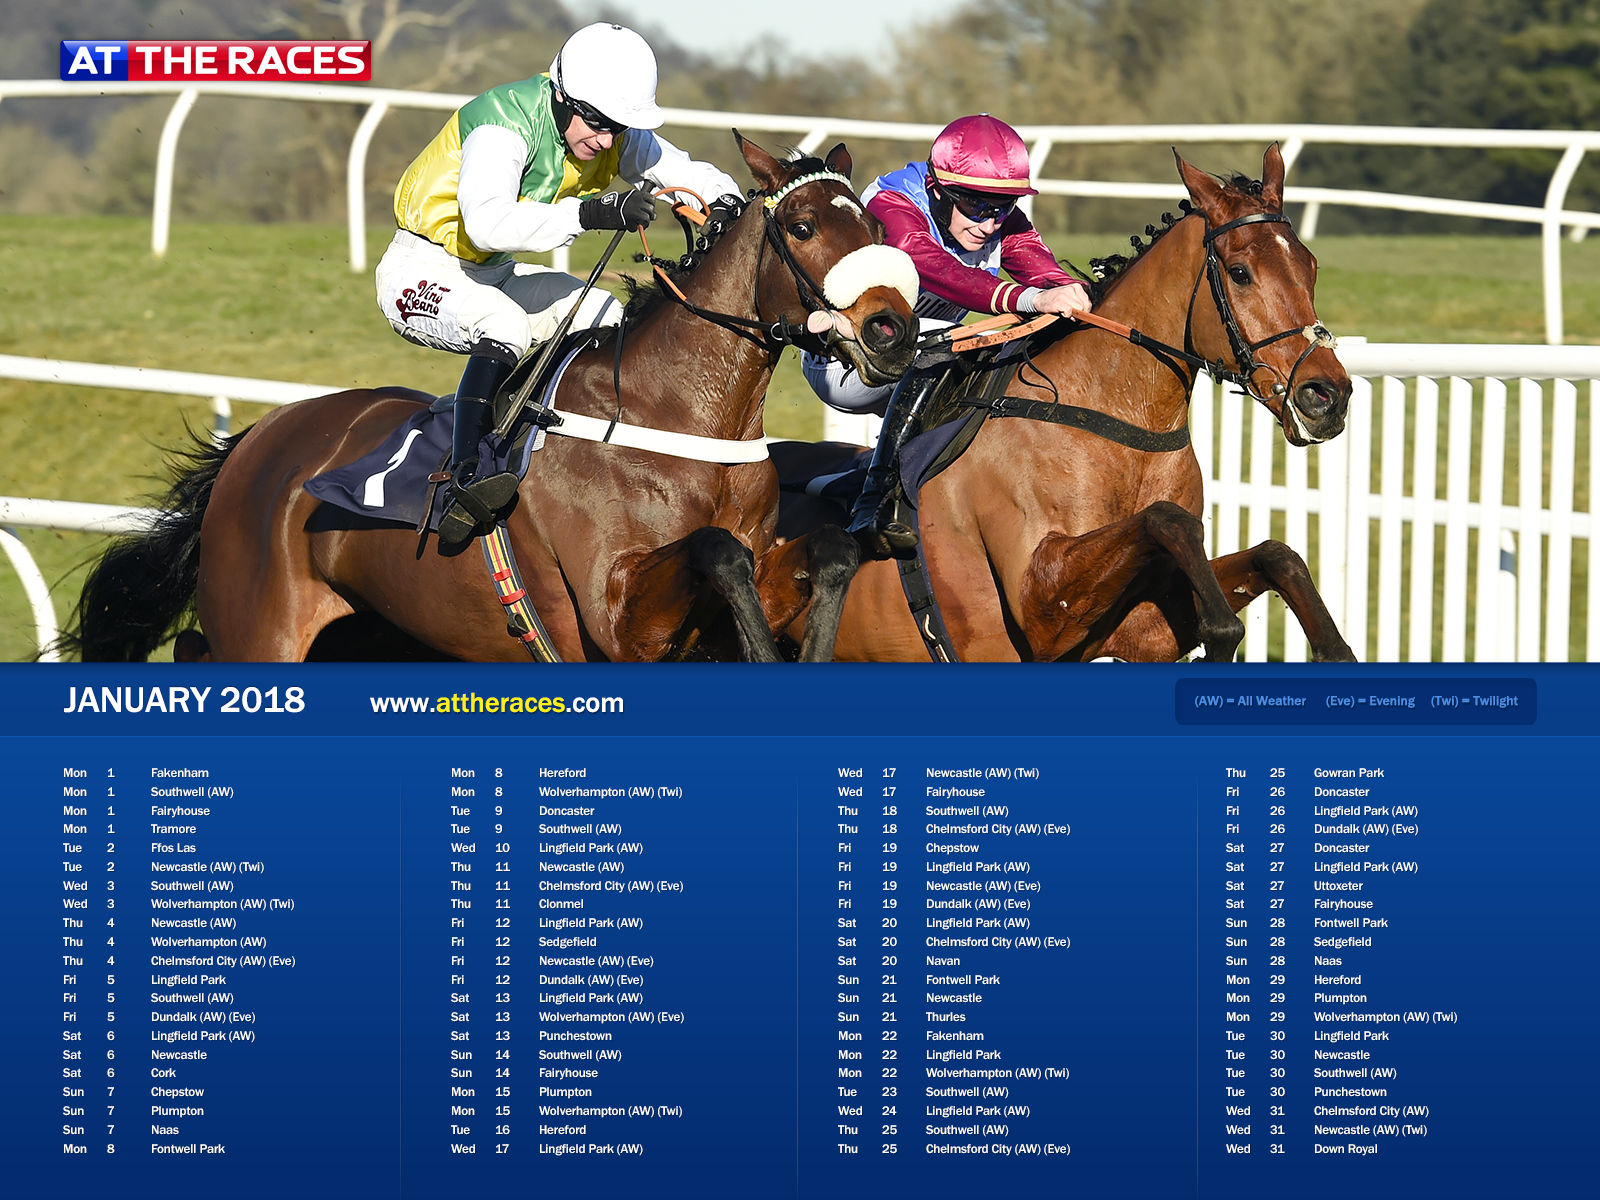 At The Races 2018 Calendar   At The Races